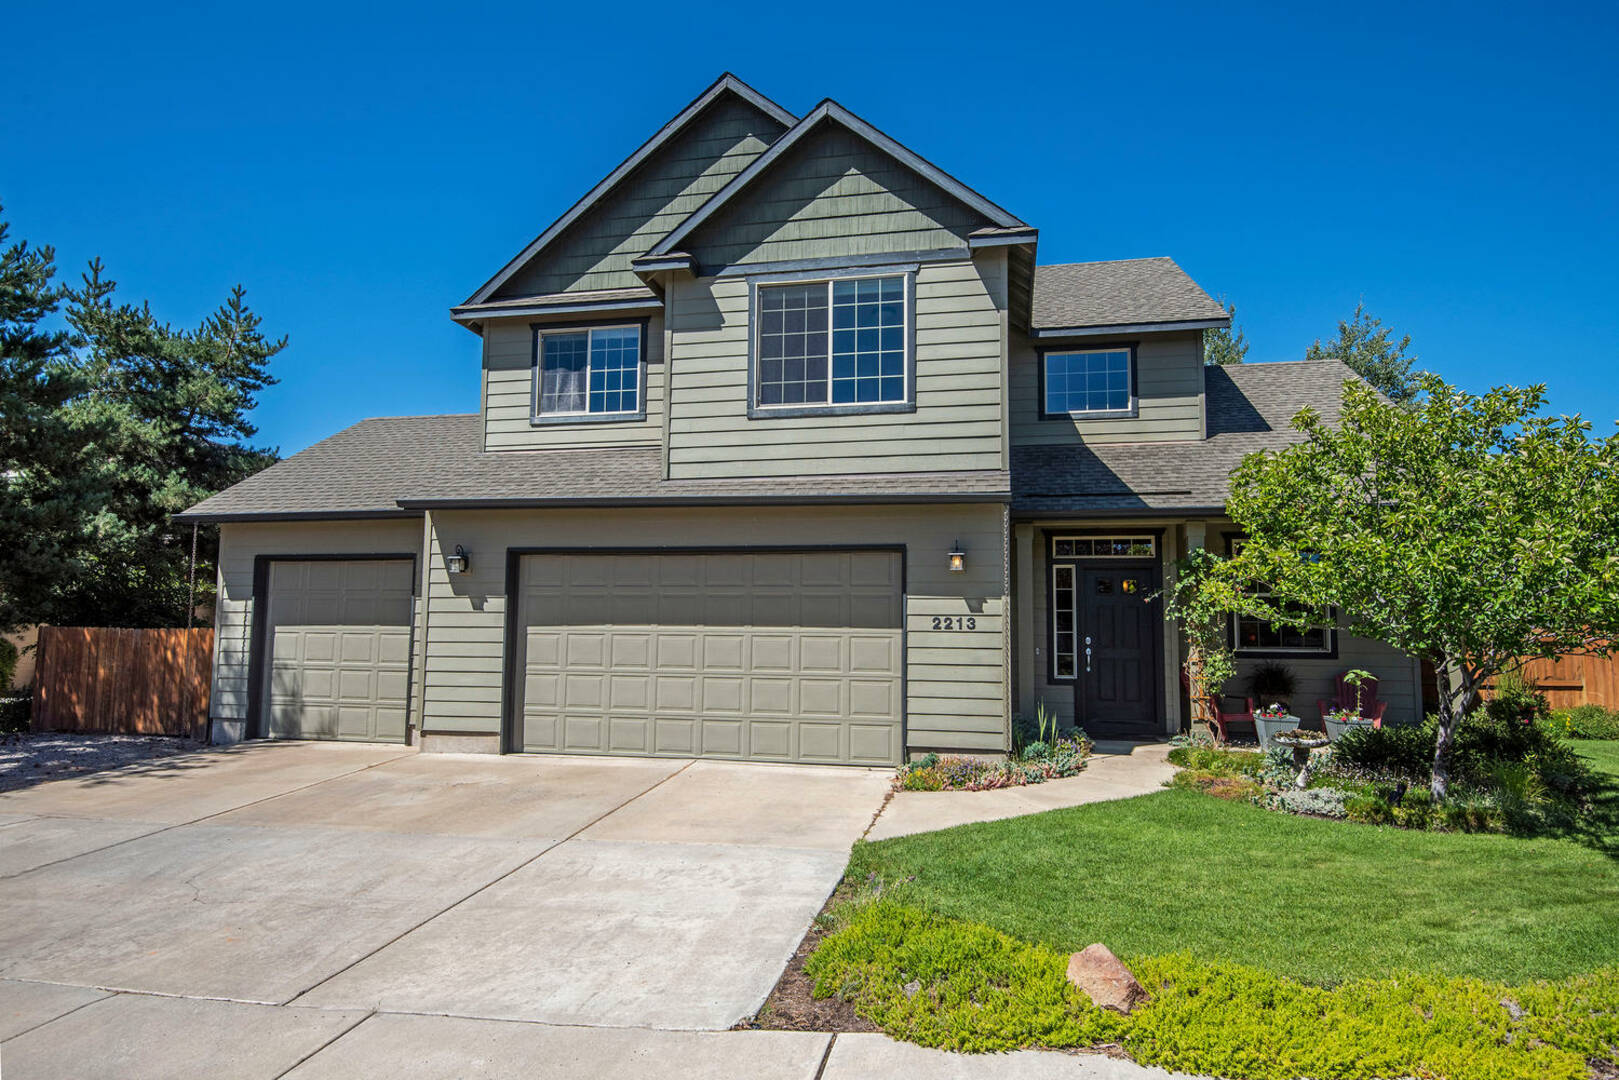 2213 NW Maple Ct. Redmond, OR 97756